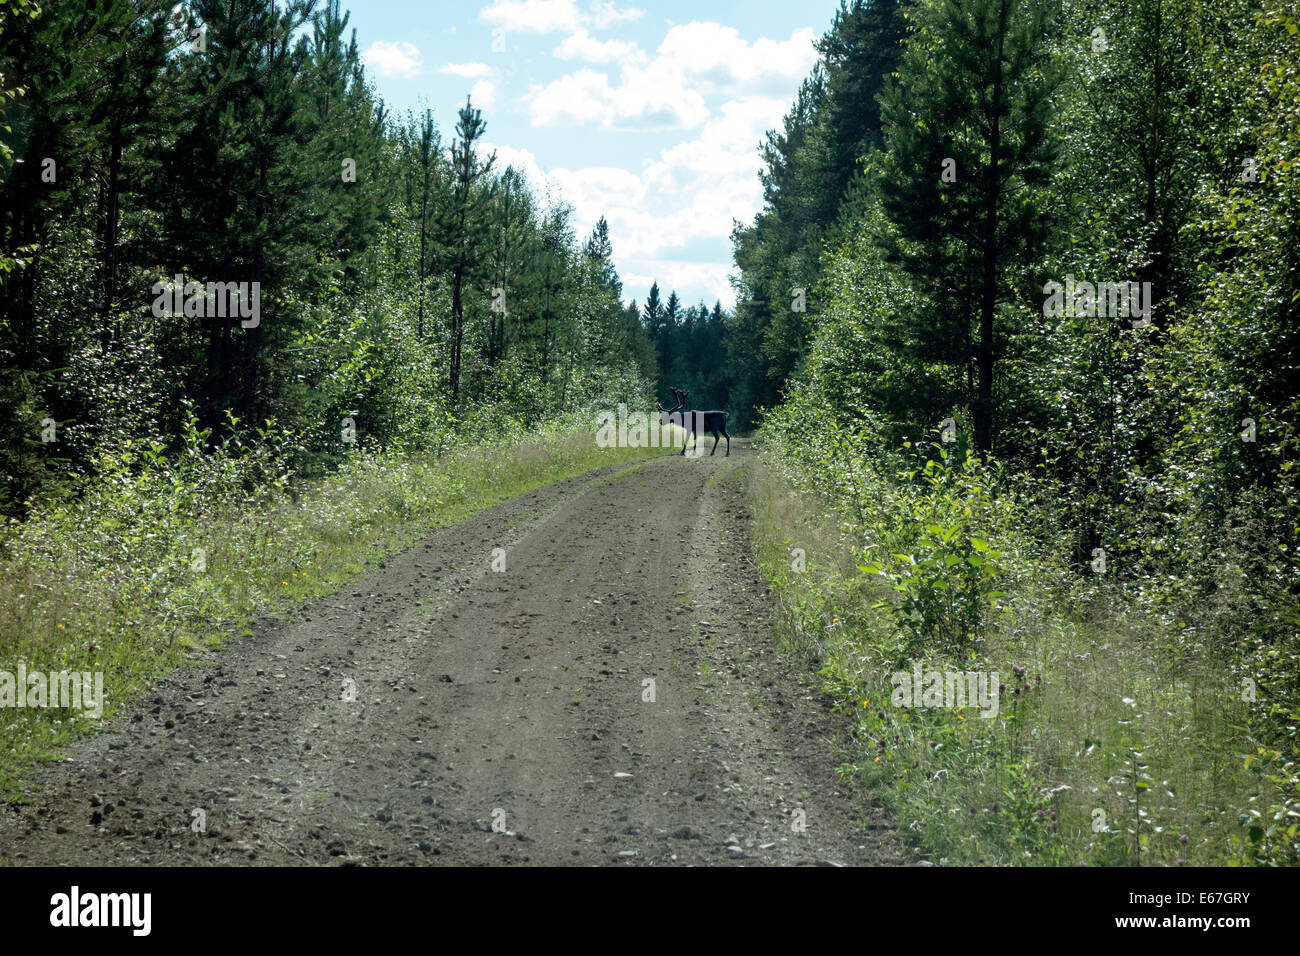 A wild rein deer in the forest, Sweden - Stock Image